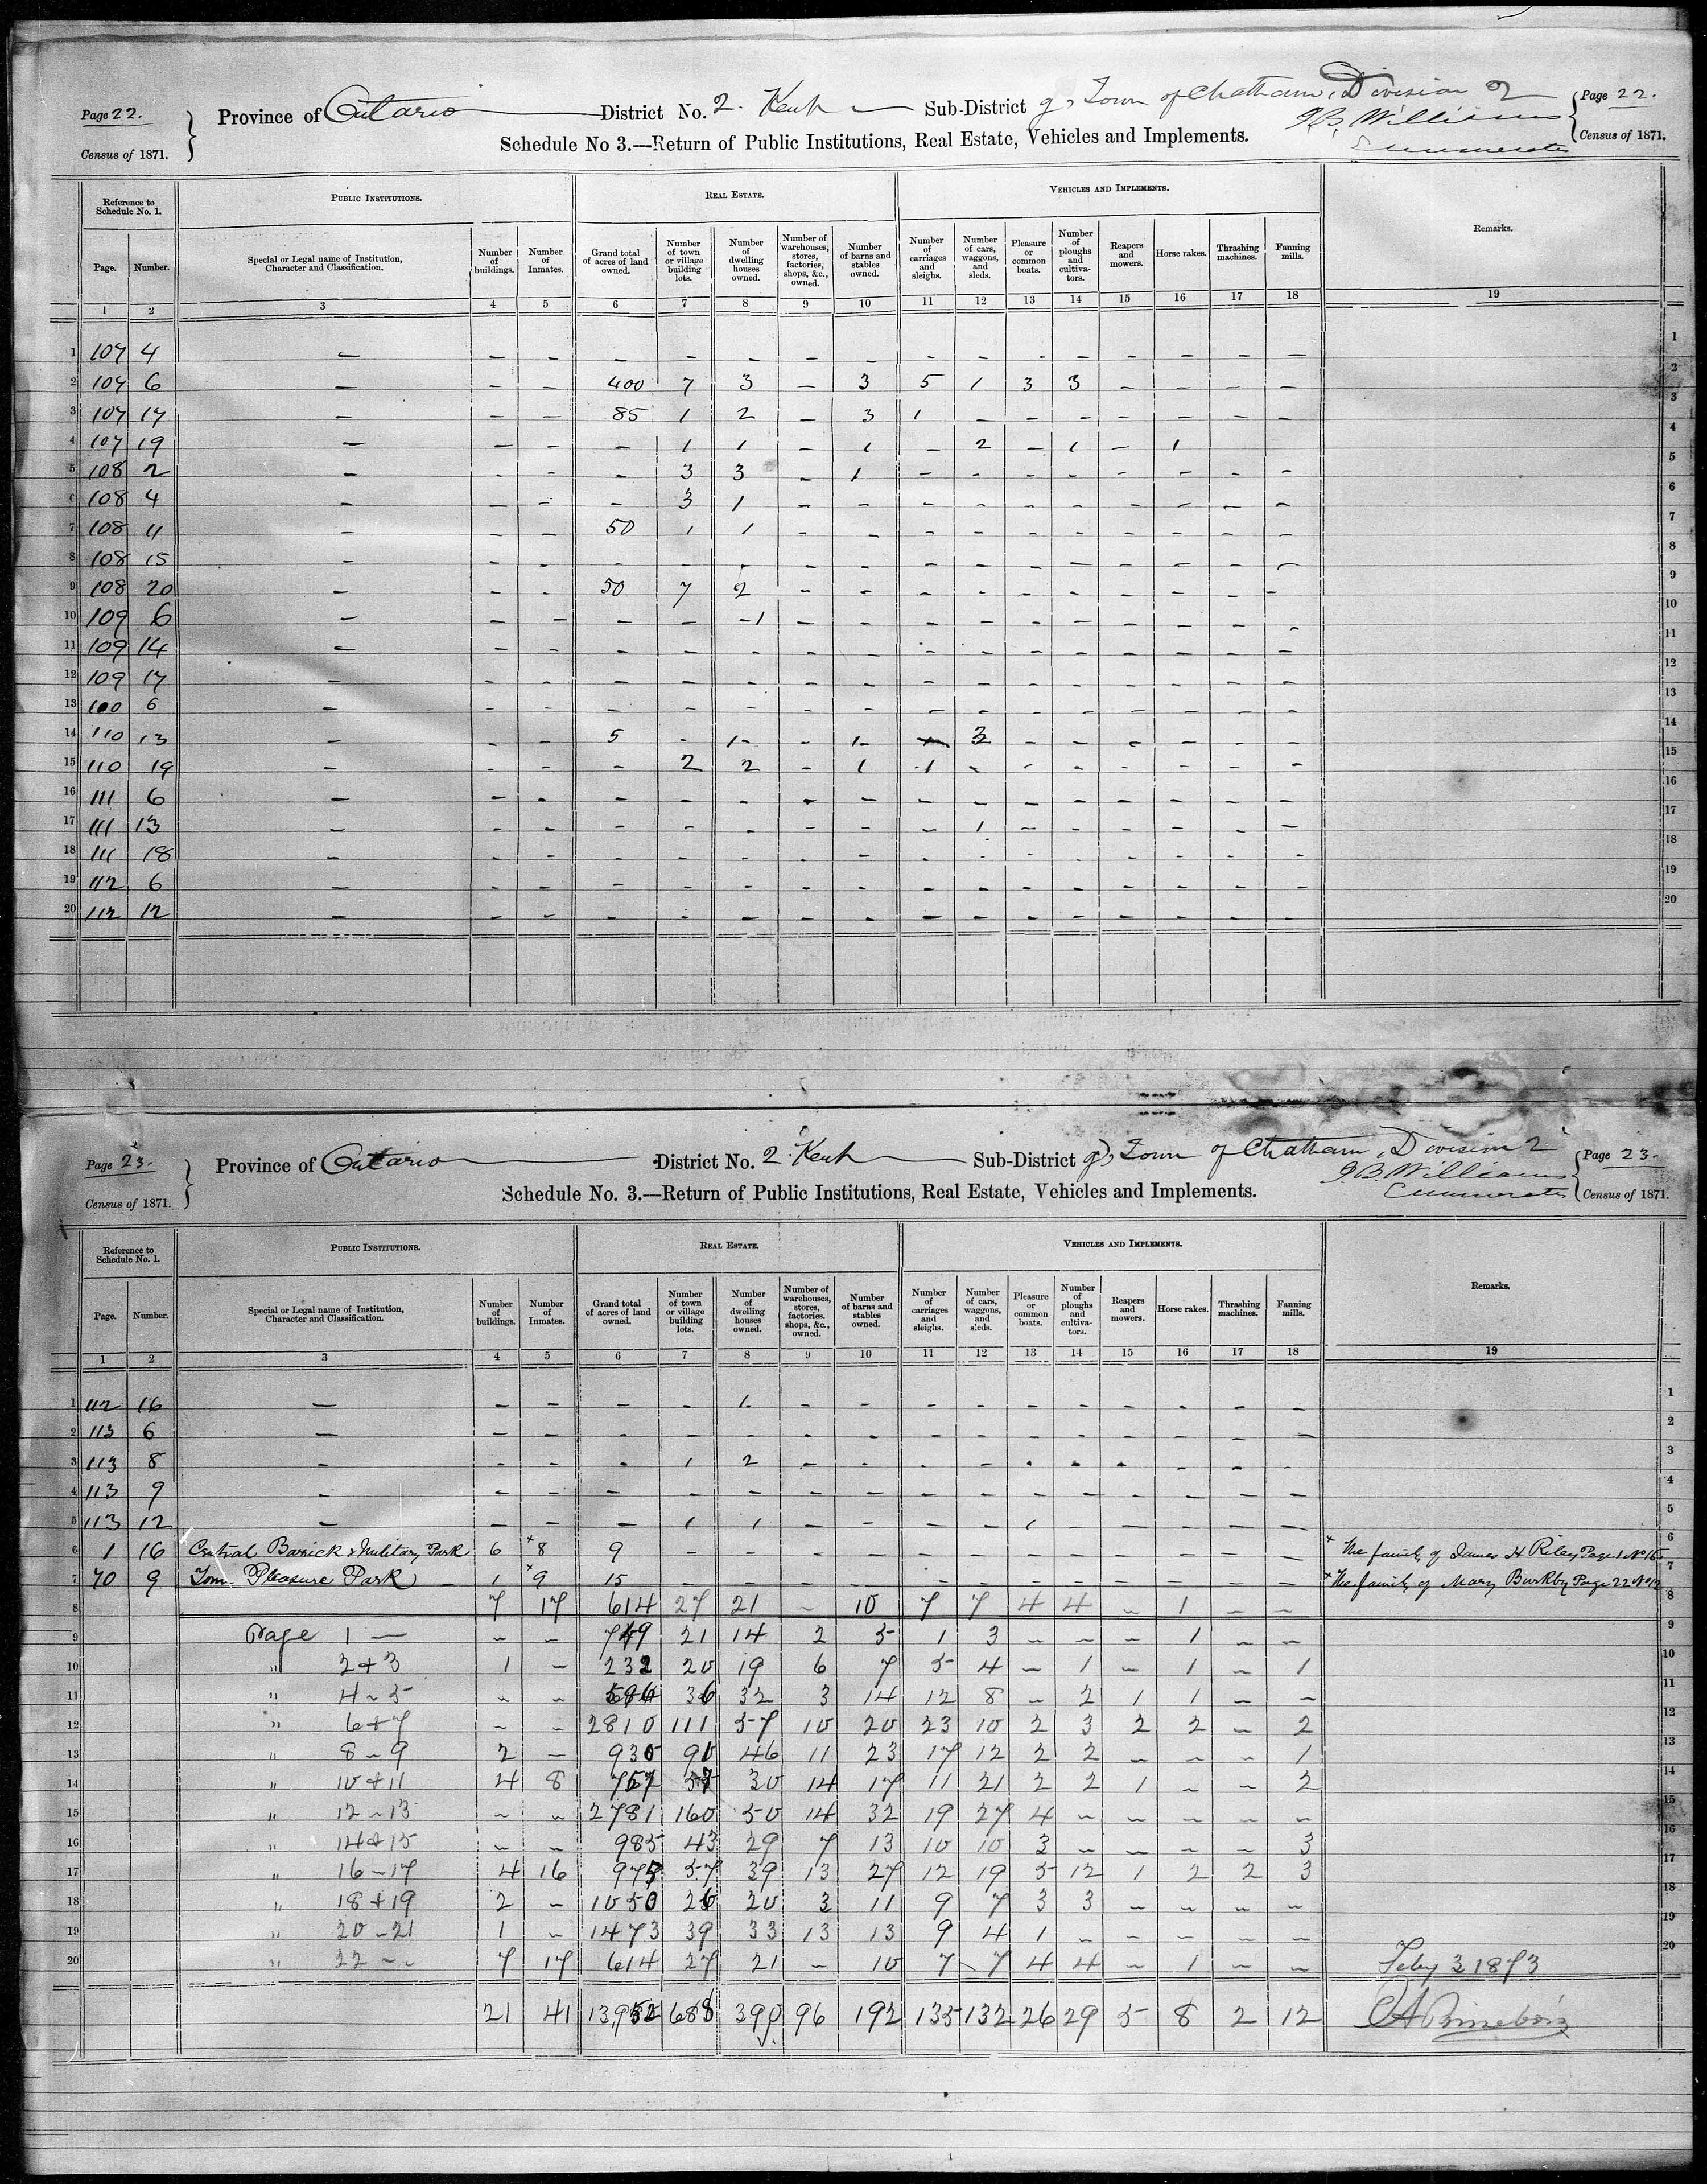 Title: Census of Canada, 1871 - Mikan Number: 142105 - Microform: c-9893